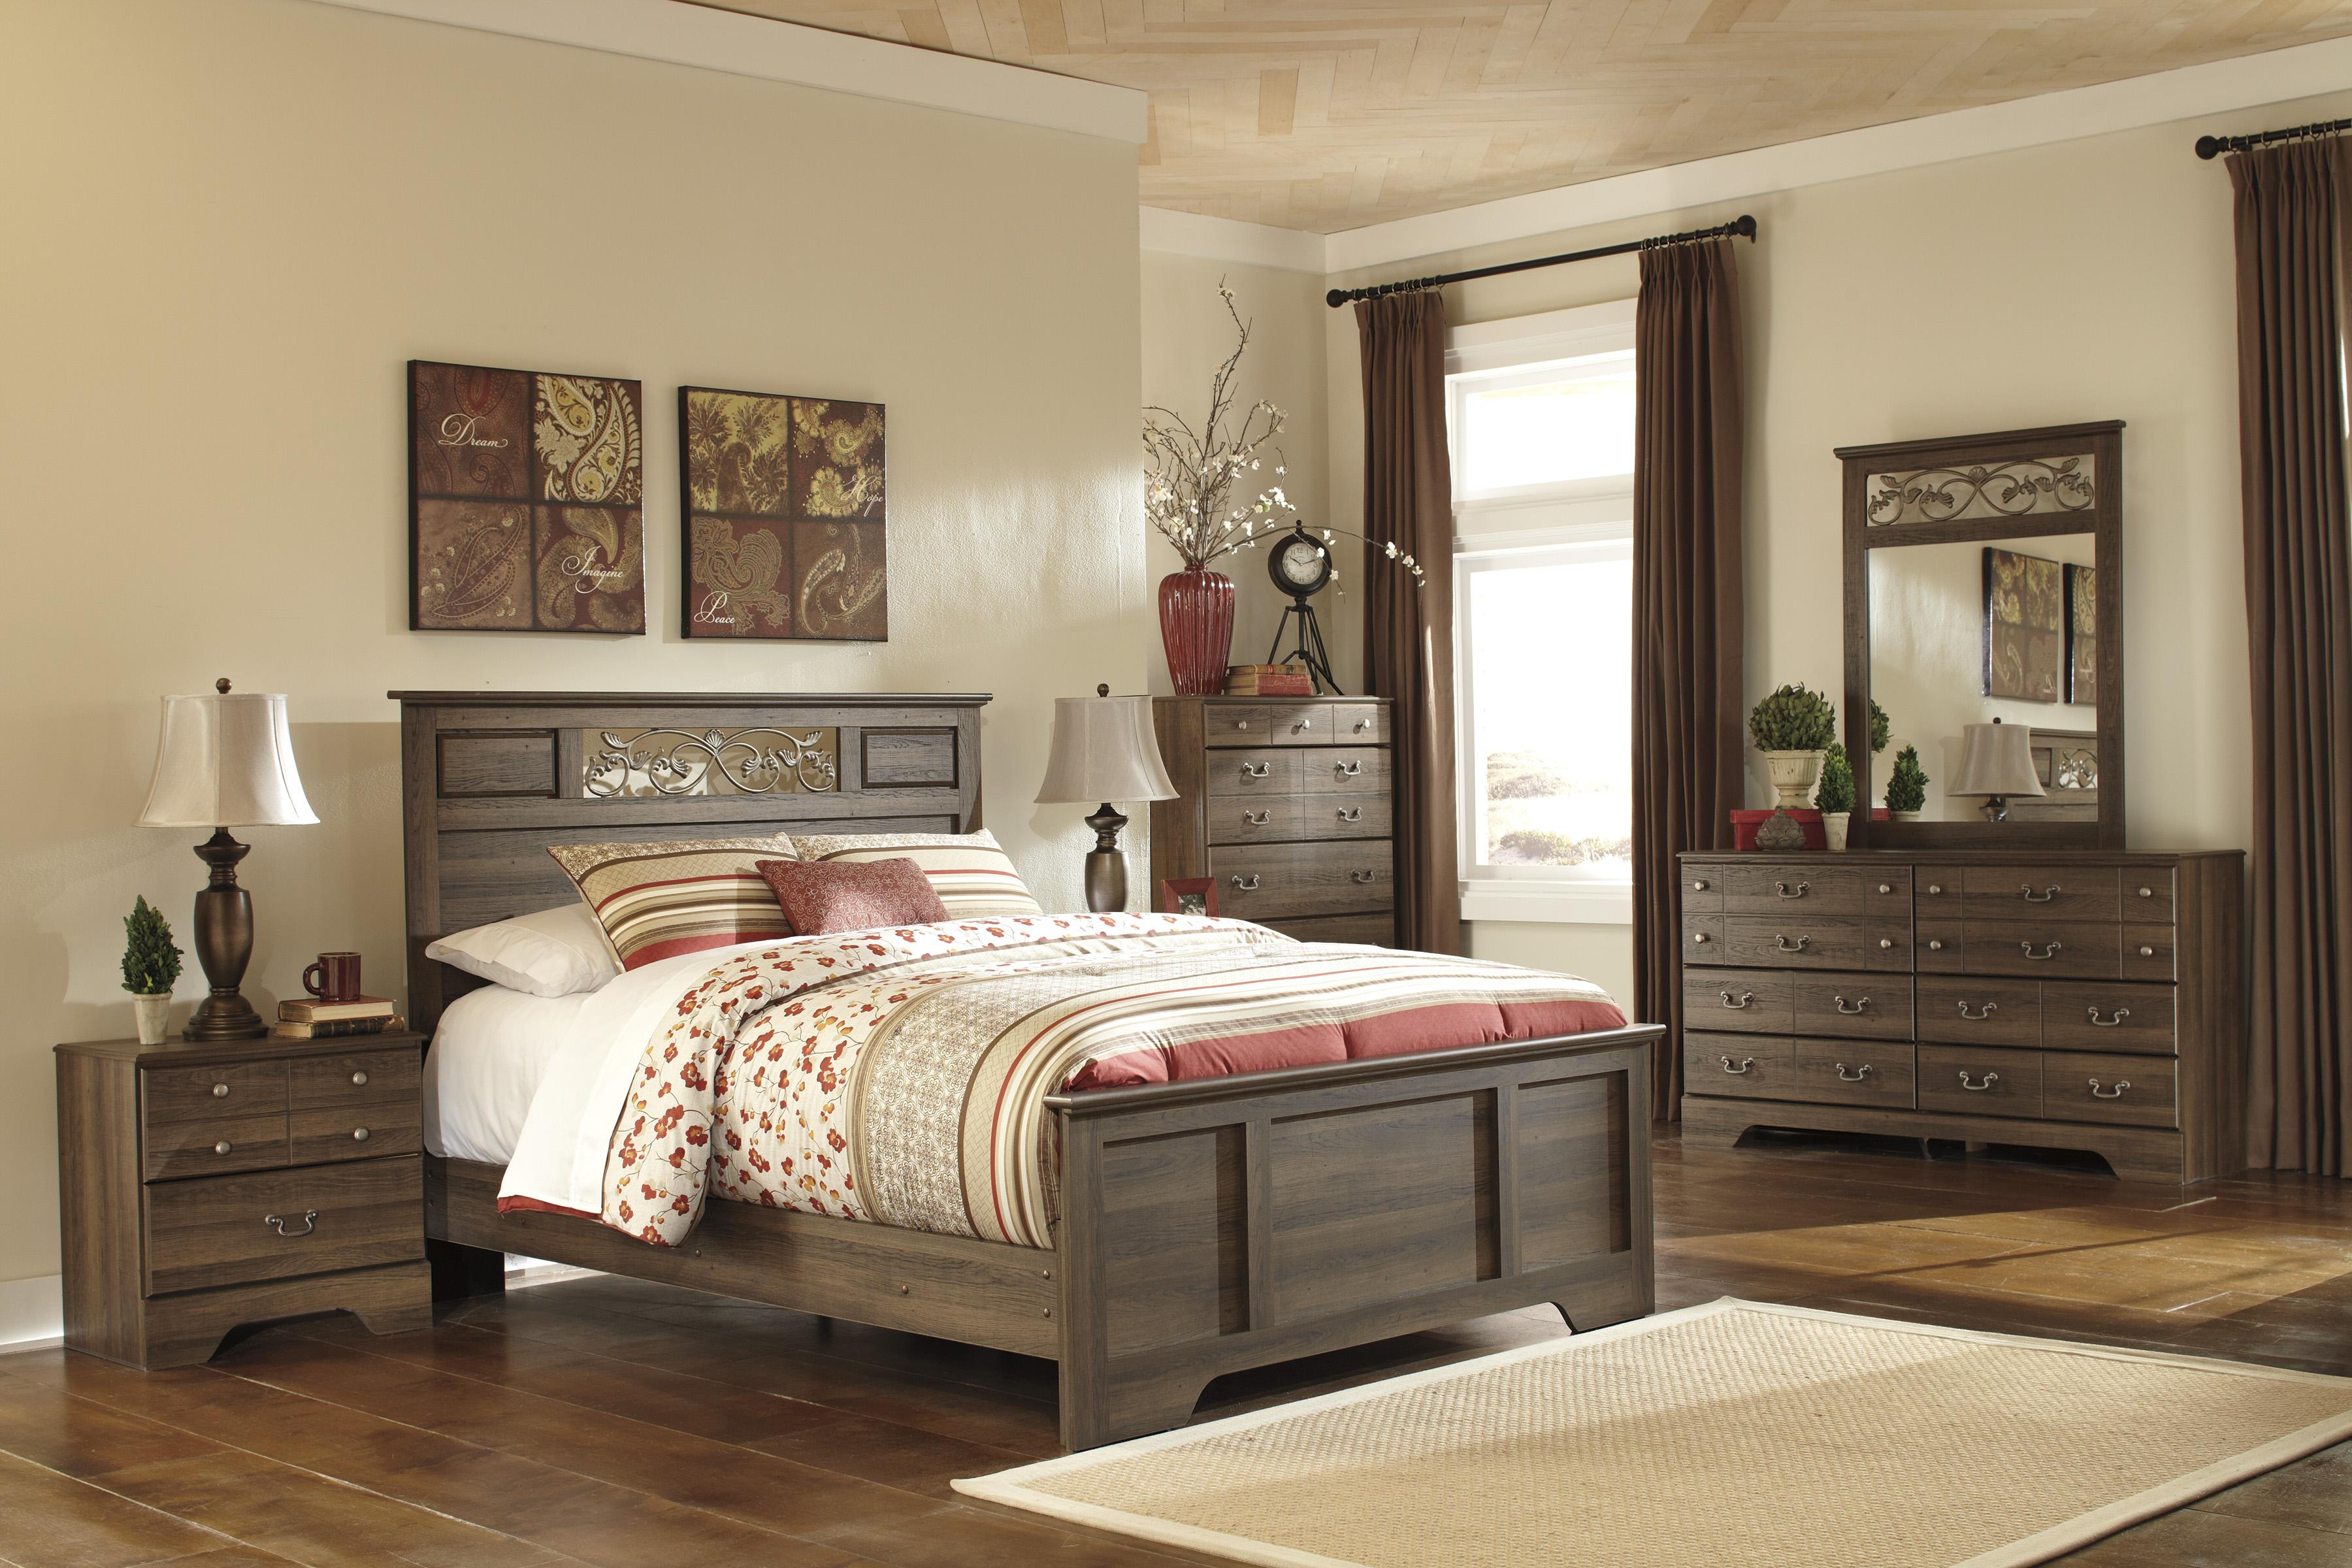 best bedroom of rustic our chest dressers full dresser gray weathered four is drawer beauty